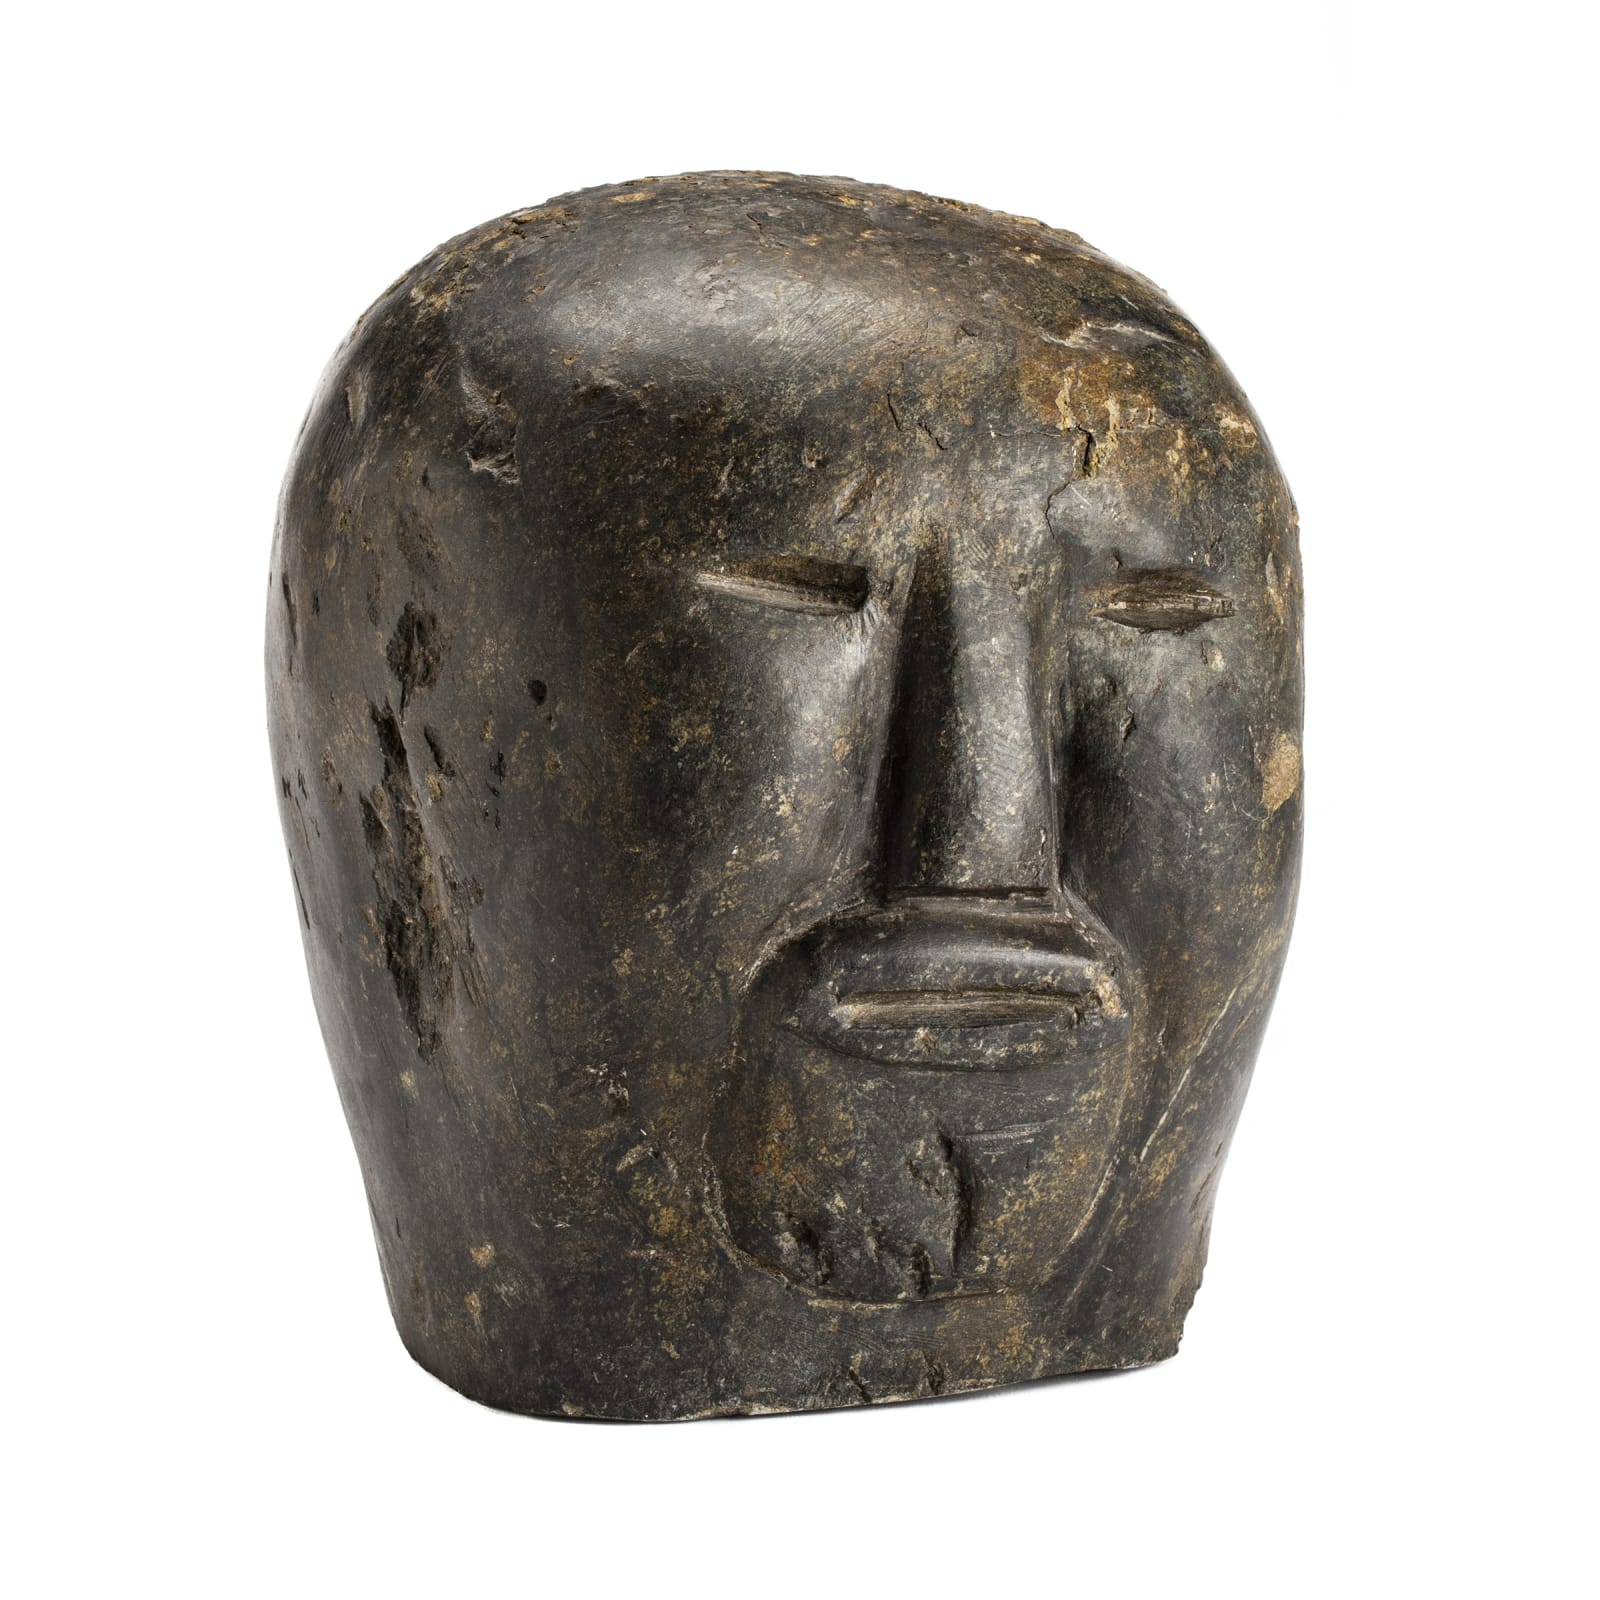 TUNA IQULIQ (1935-2015) QAMANI'TUAQ (BAKER LAKE) Head, c. 1964 ESTIMATE: $4,000 — $6,000 PRICE REALIZED: $21,600 A WORLD RECORD PRICE FOR THE ARTIST AT AUCTION.